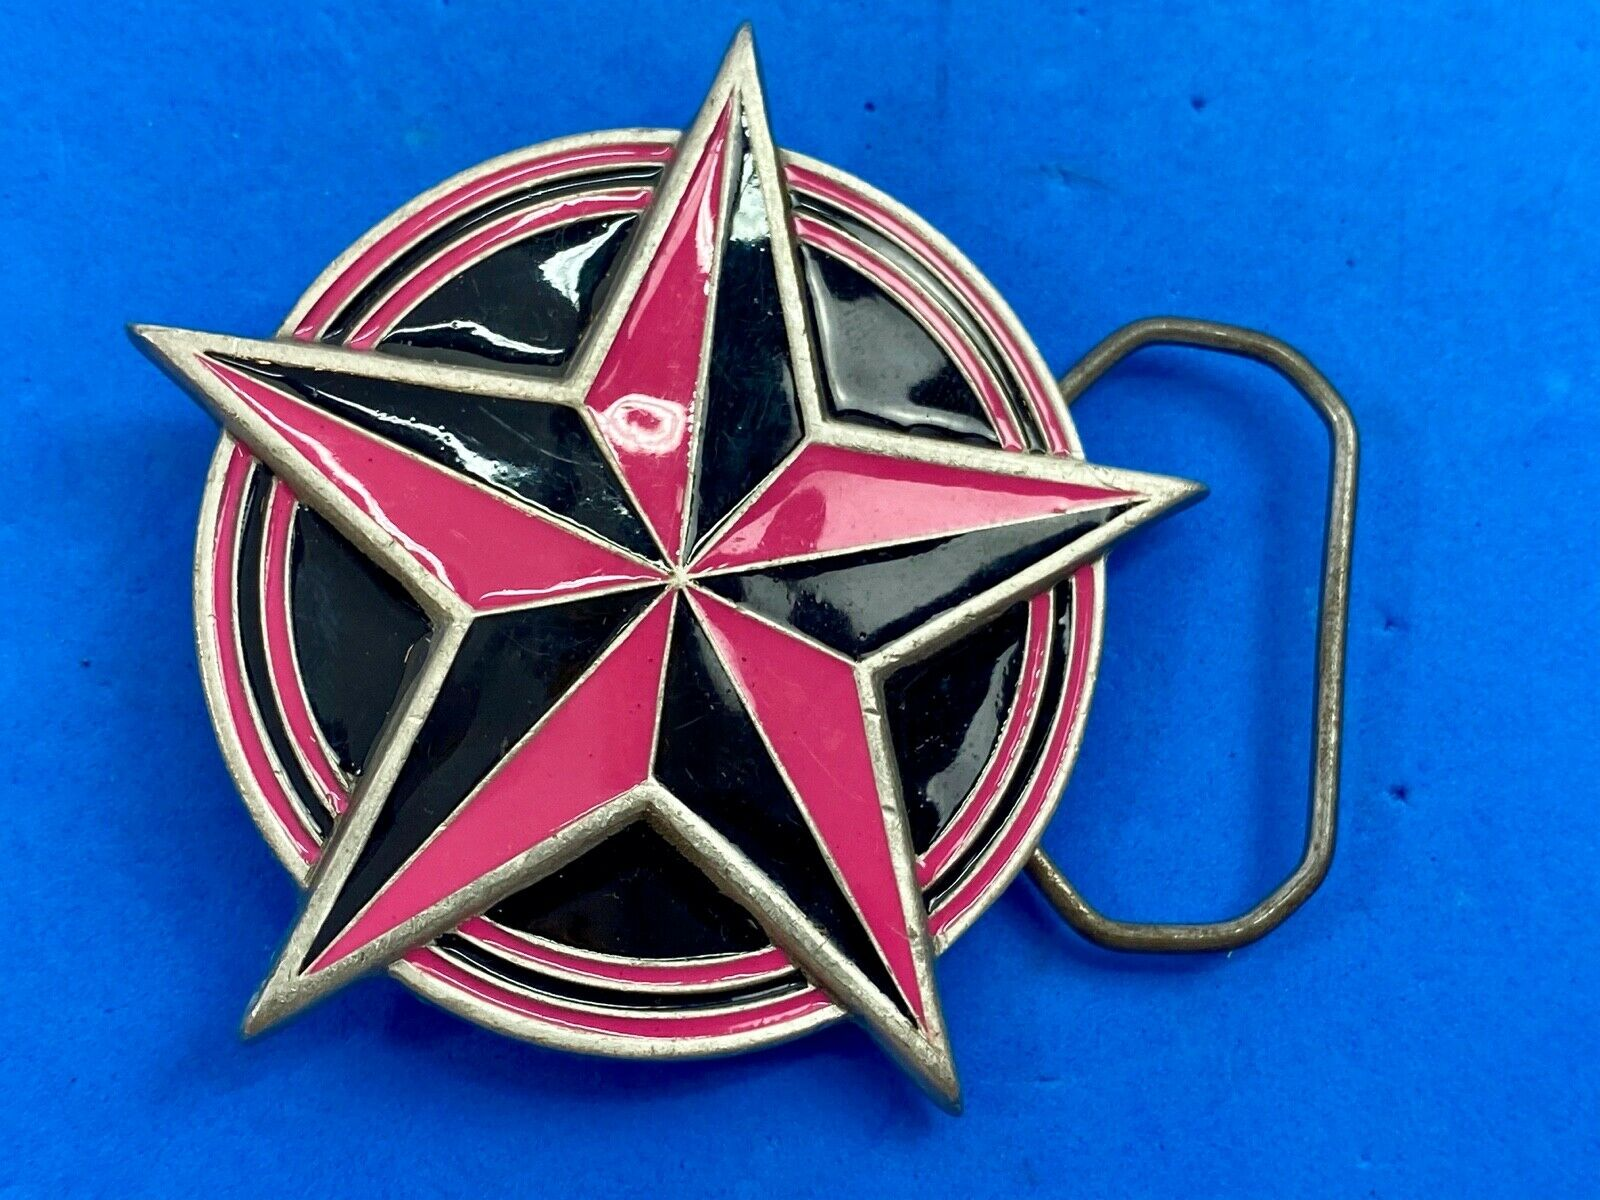 2002 Great American Products belt buckle 4613 - pink and black enamel star